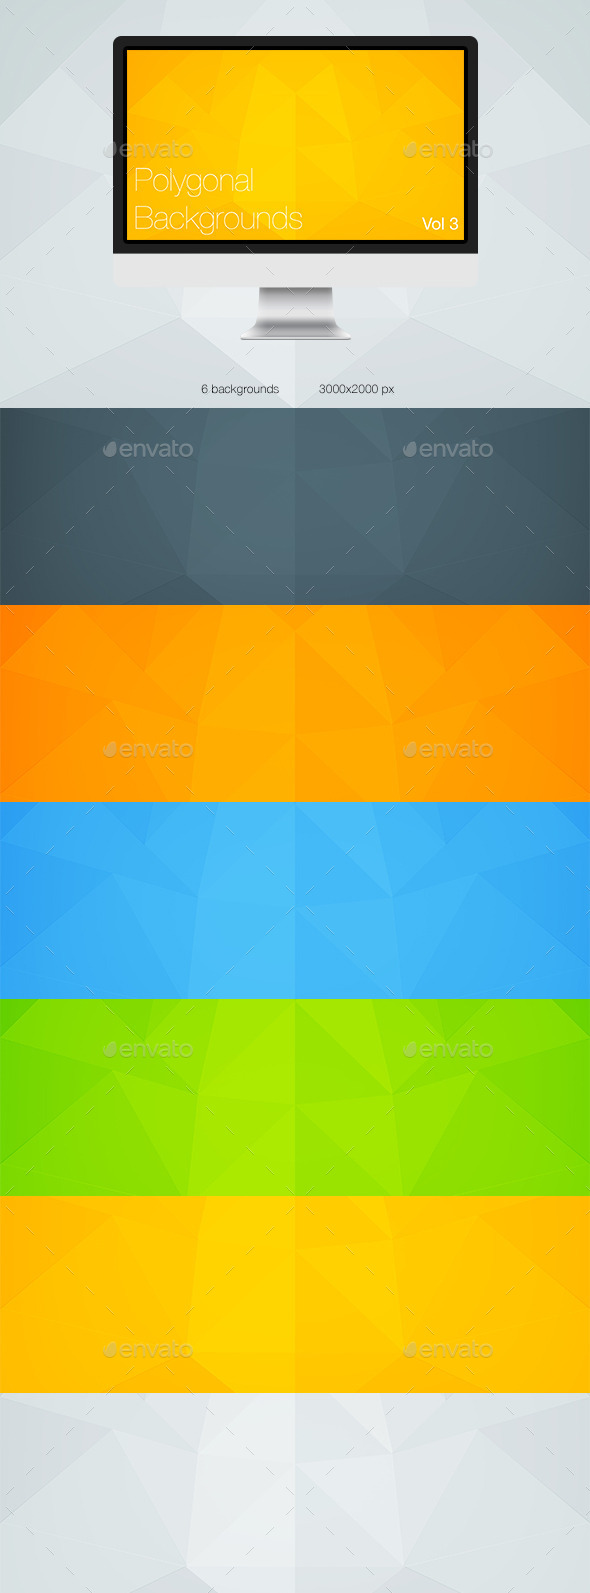 GraphicRiver Polygonal Backgrounds Vol 3 10455244